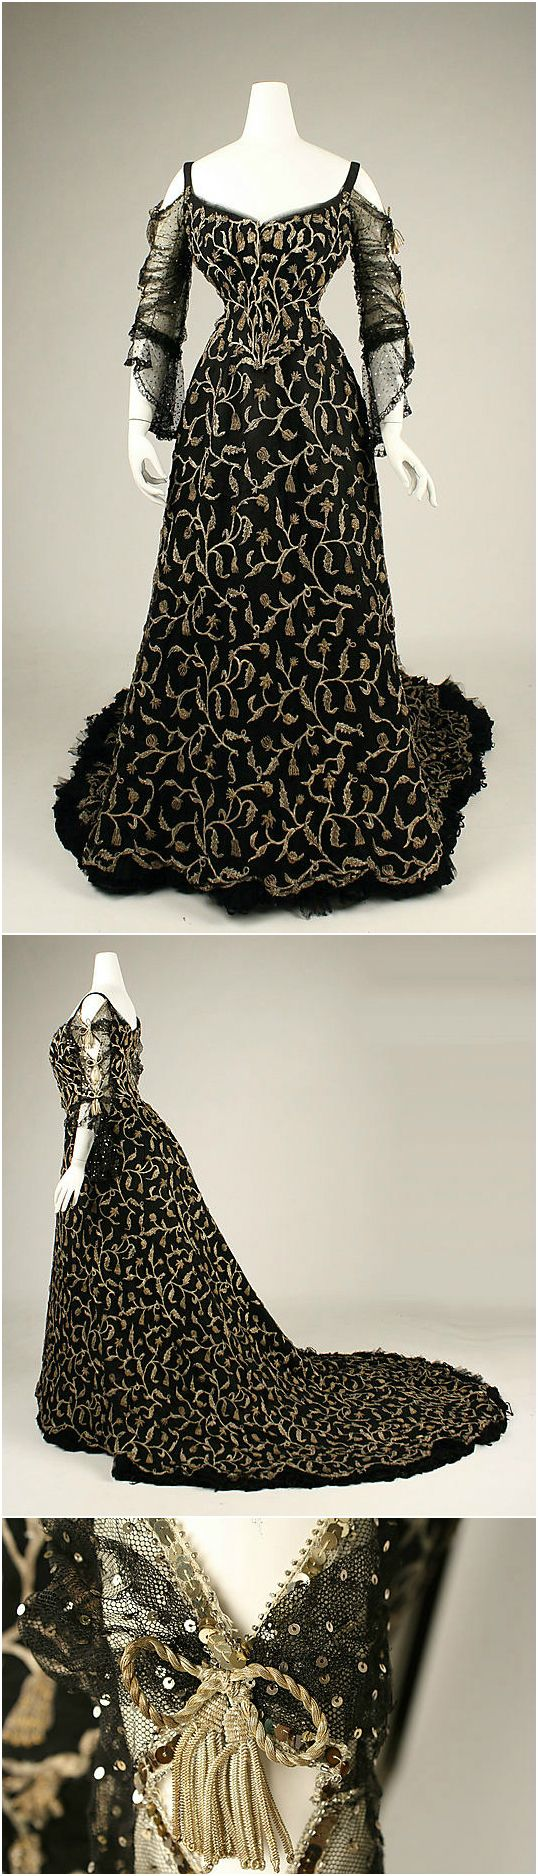 Dress [possible court dress?], by Morin-Blossier, Paris [label], 1904, at the Met. See: http://www.metmuseum.org/collection/the-collection-online/search/108728